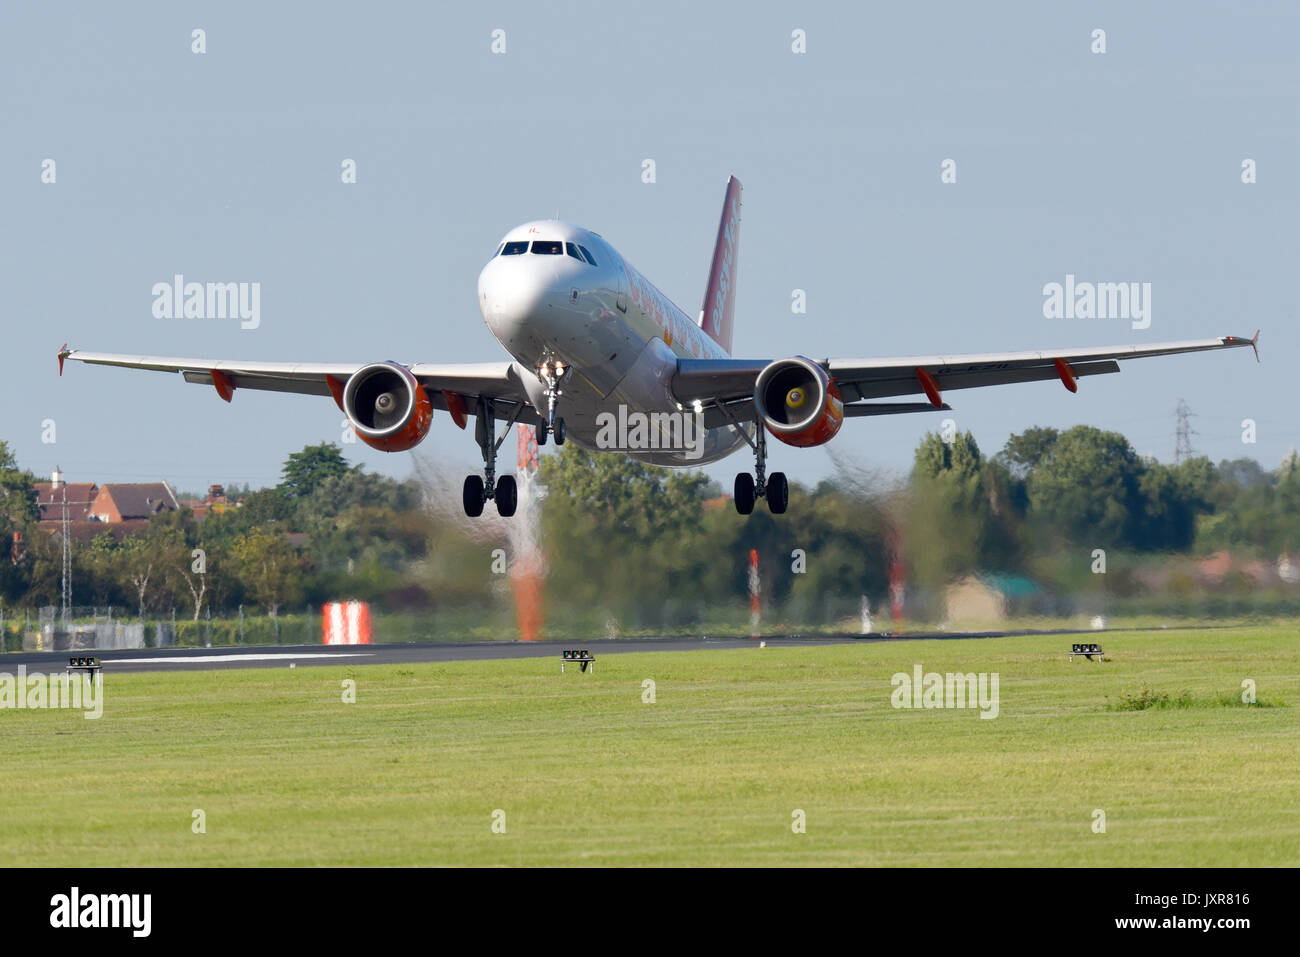 easyjet-airbus-a319-111-jet-plane-g-ezil-airliner-taking-off-from-JXR816.jpg